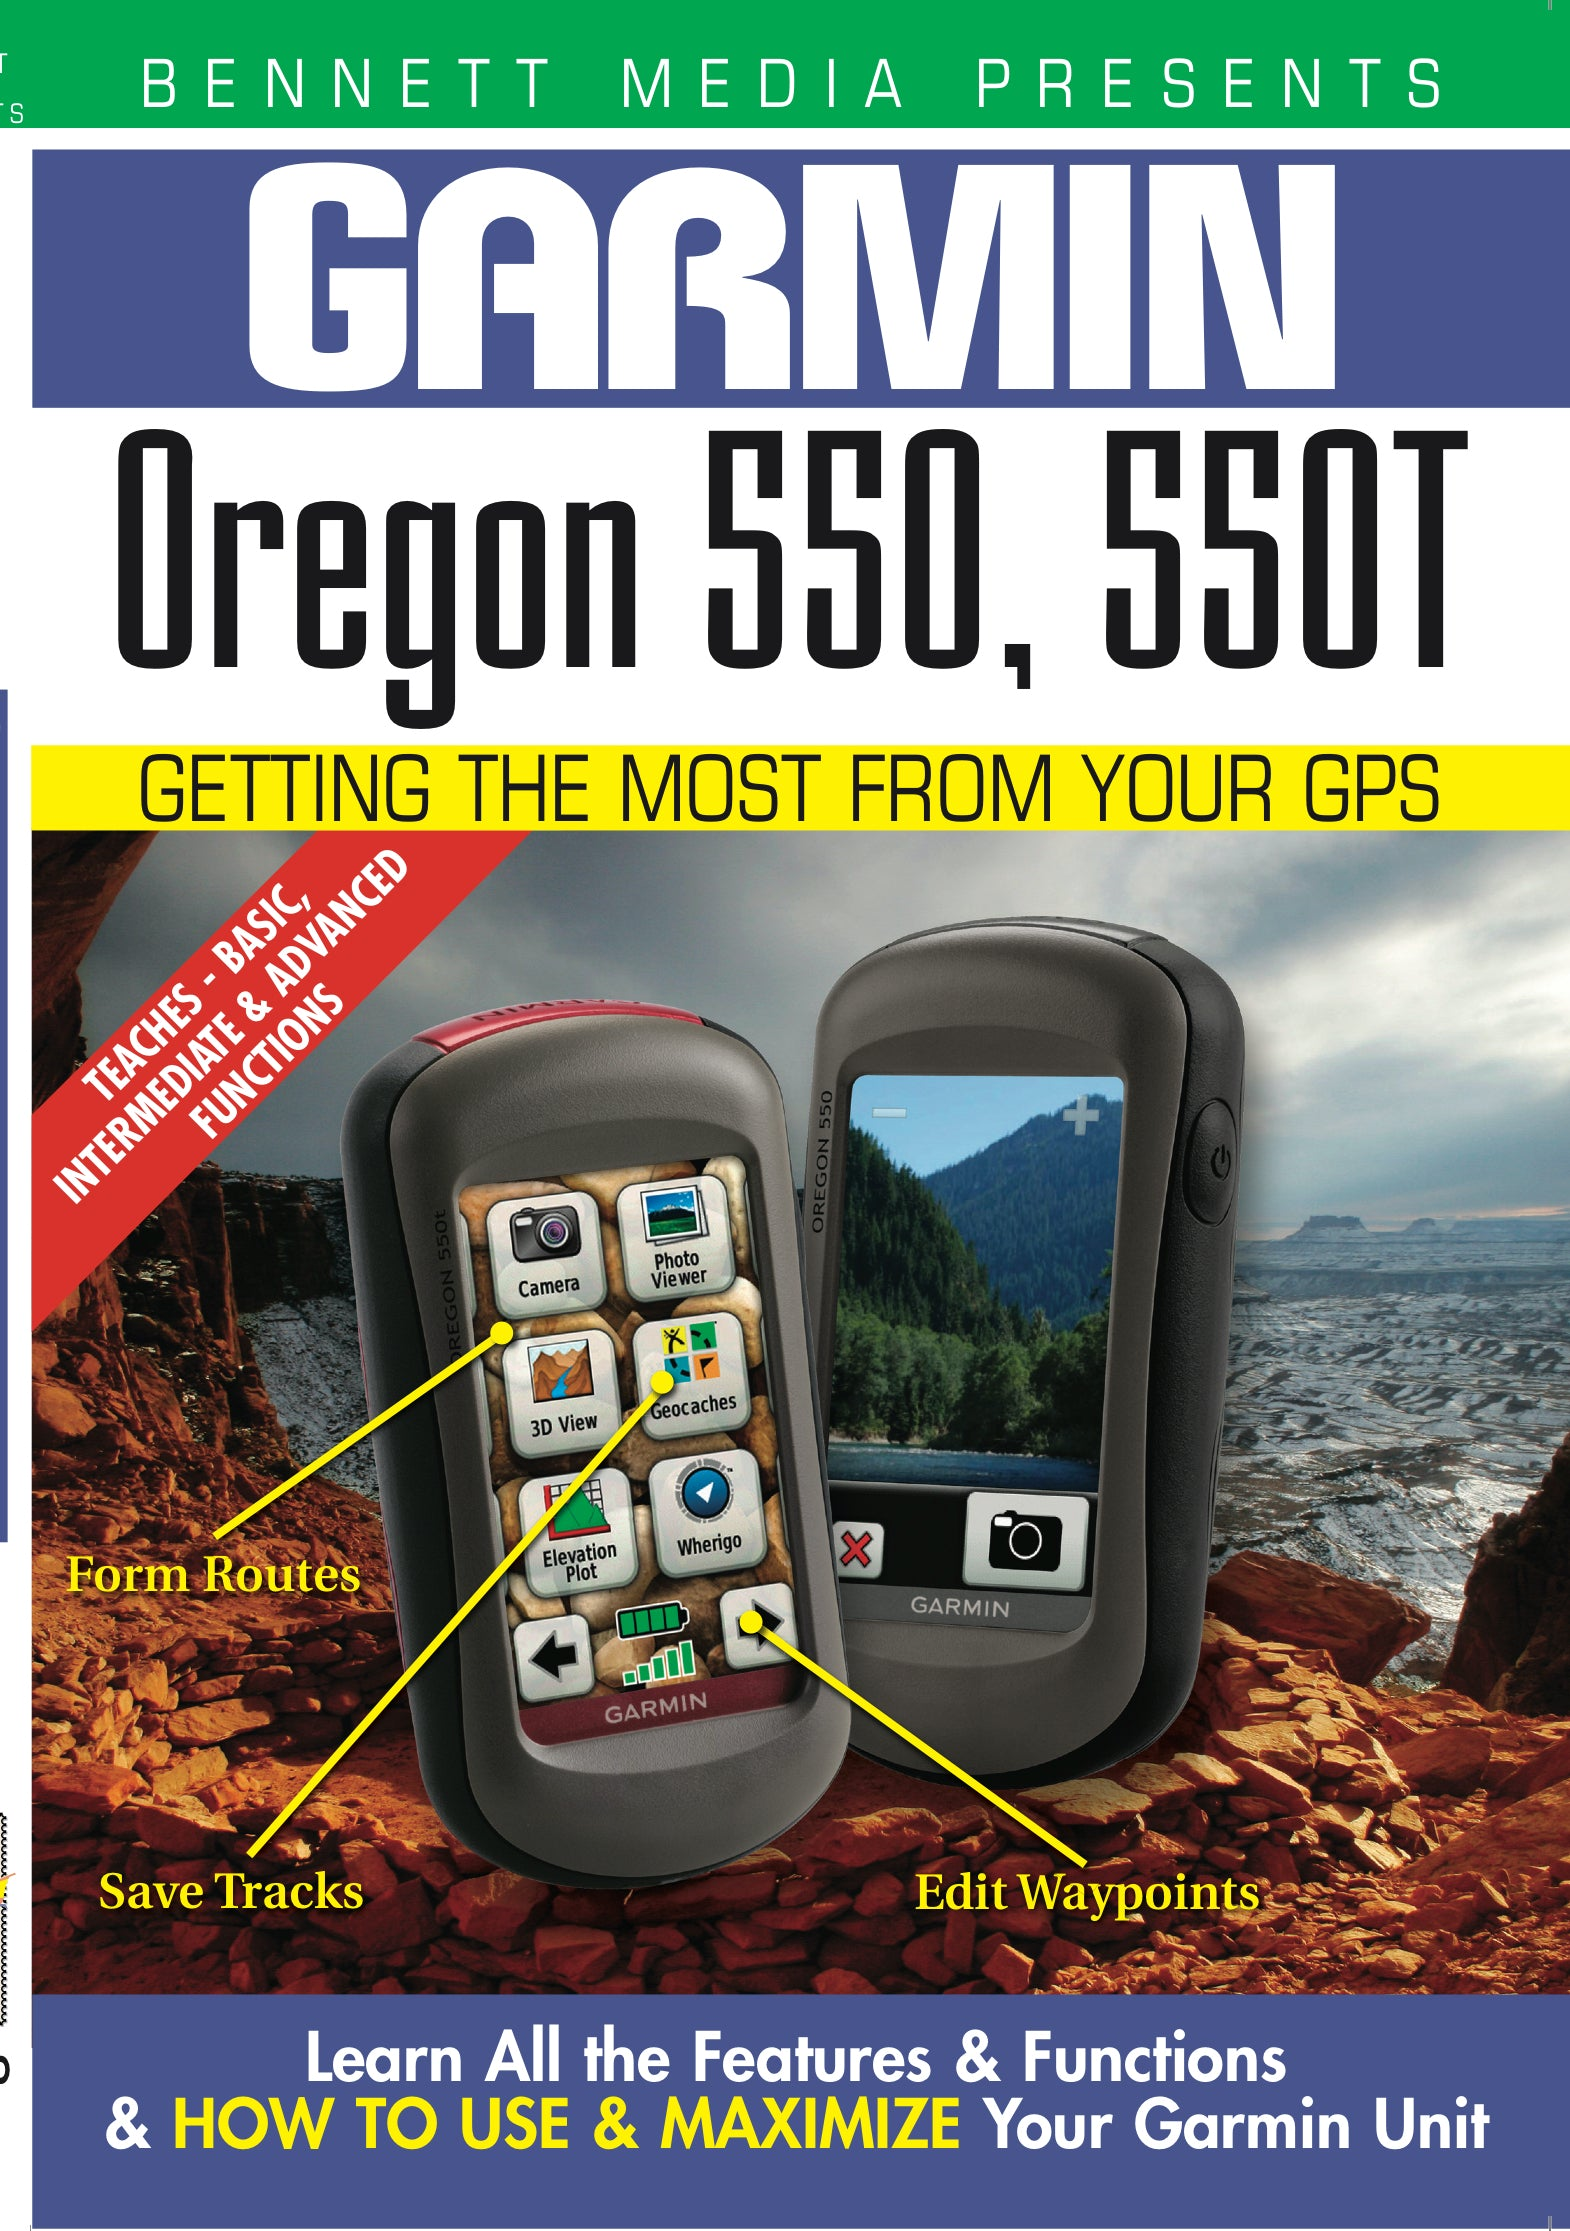 Garmin Oregon 550, 550T (DVD)